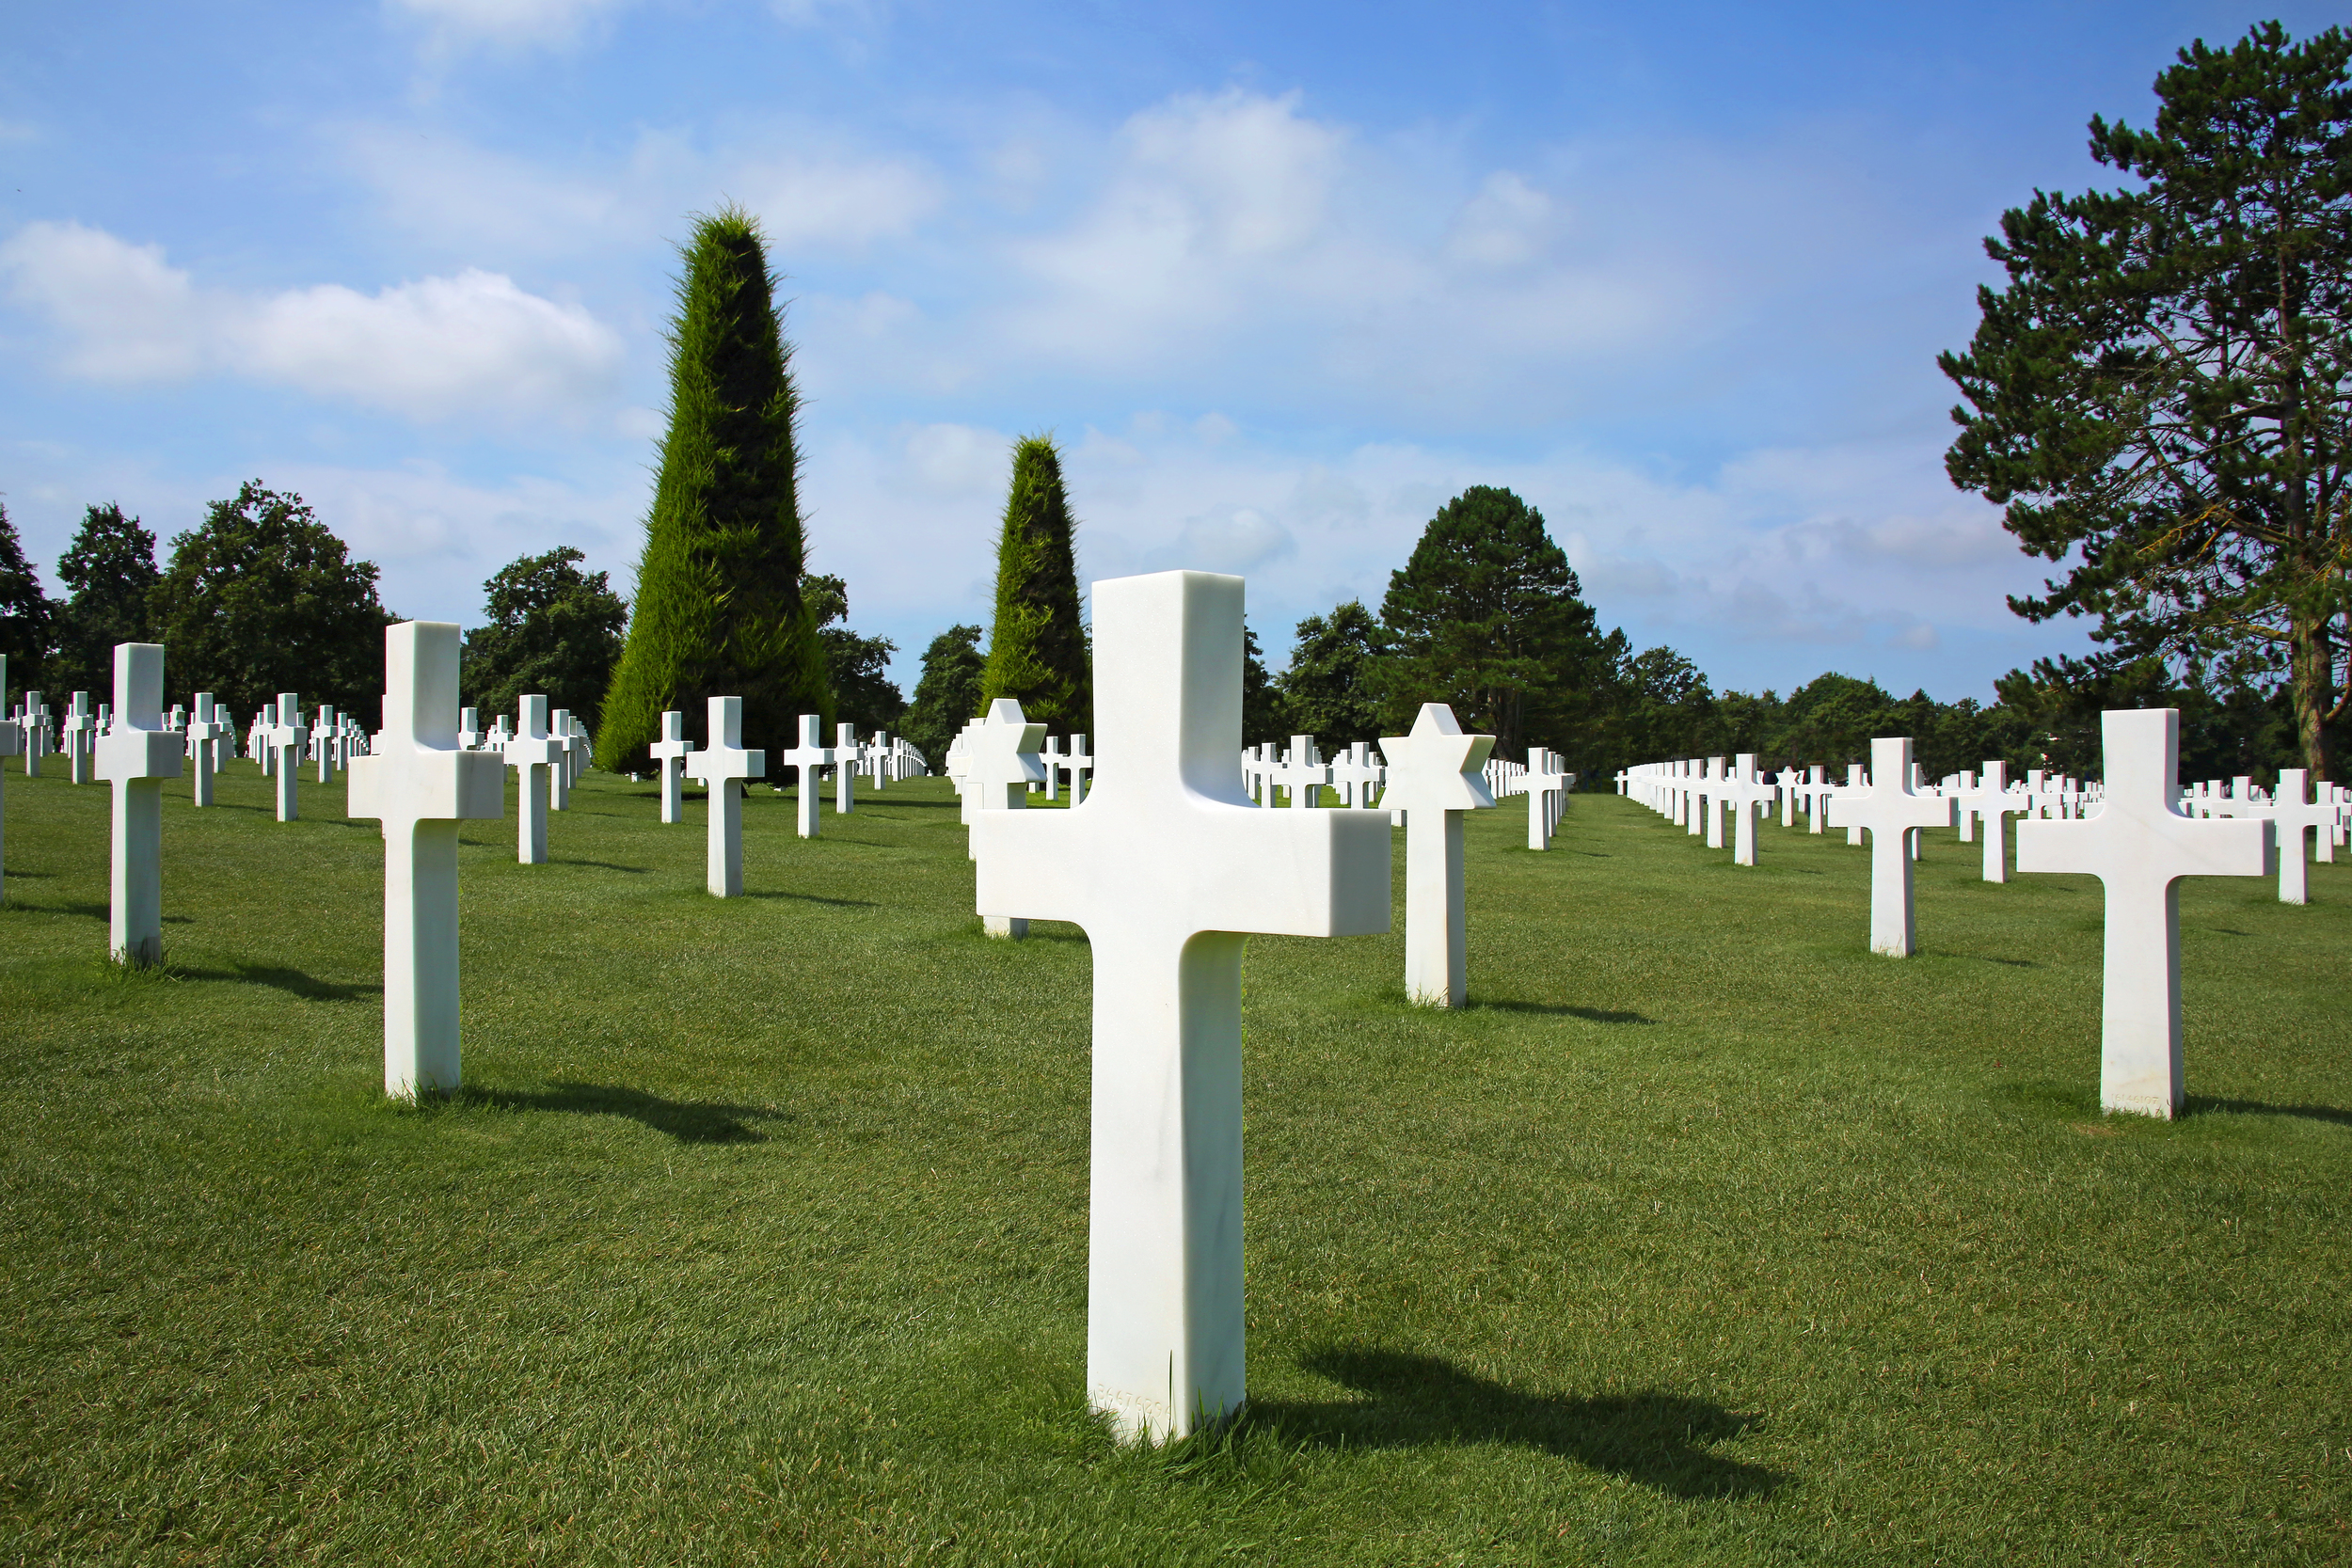 The American cemetery at Normandy. Photo by Rennett Stowe via  Wikimedia Commons